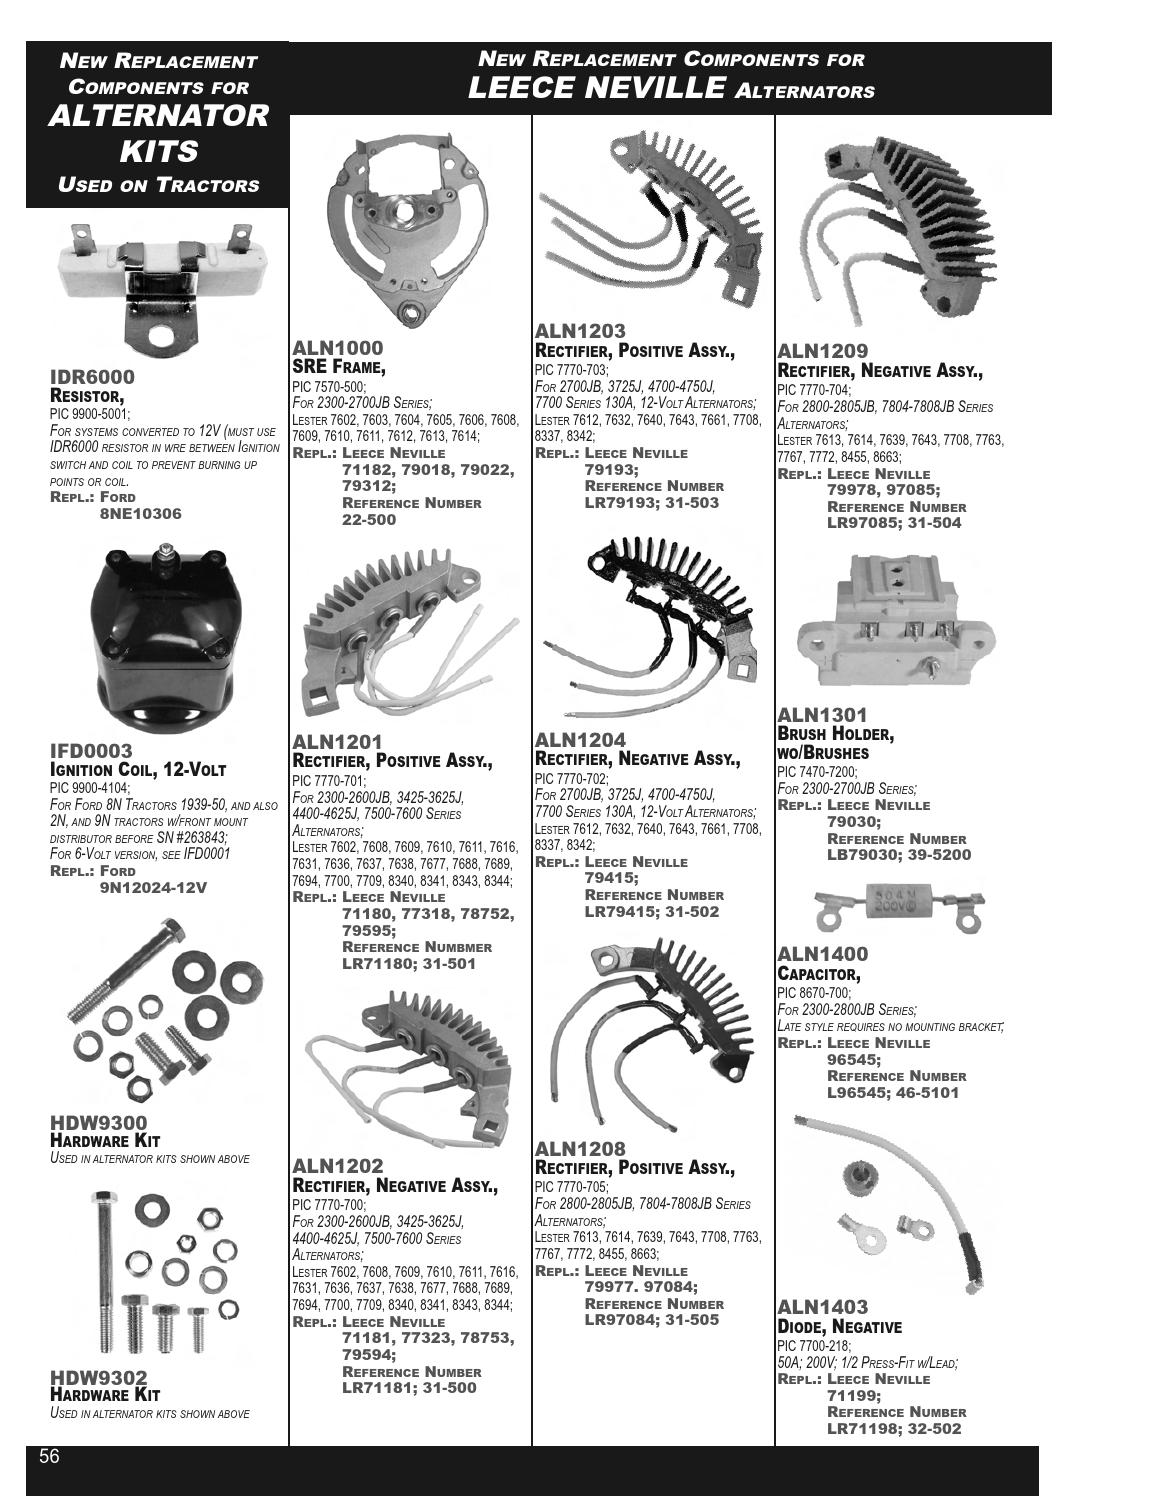 Arrowhead Electrical Products Master Components Catalog by